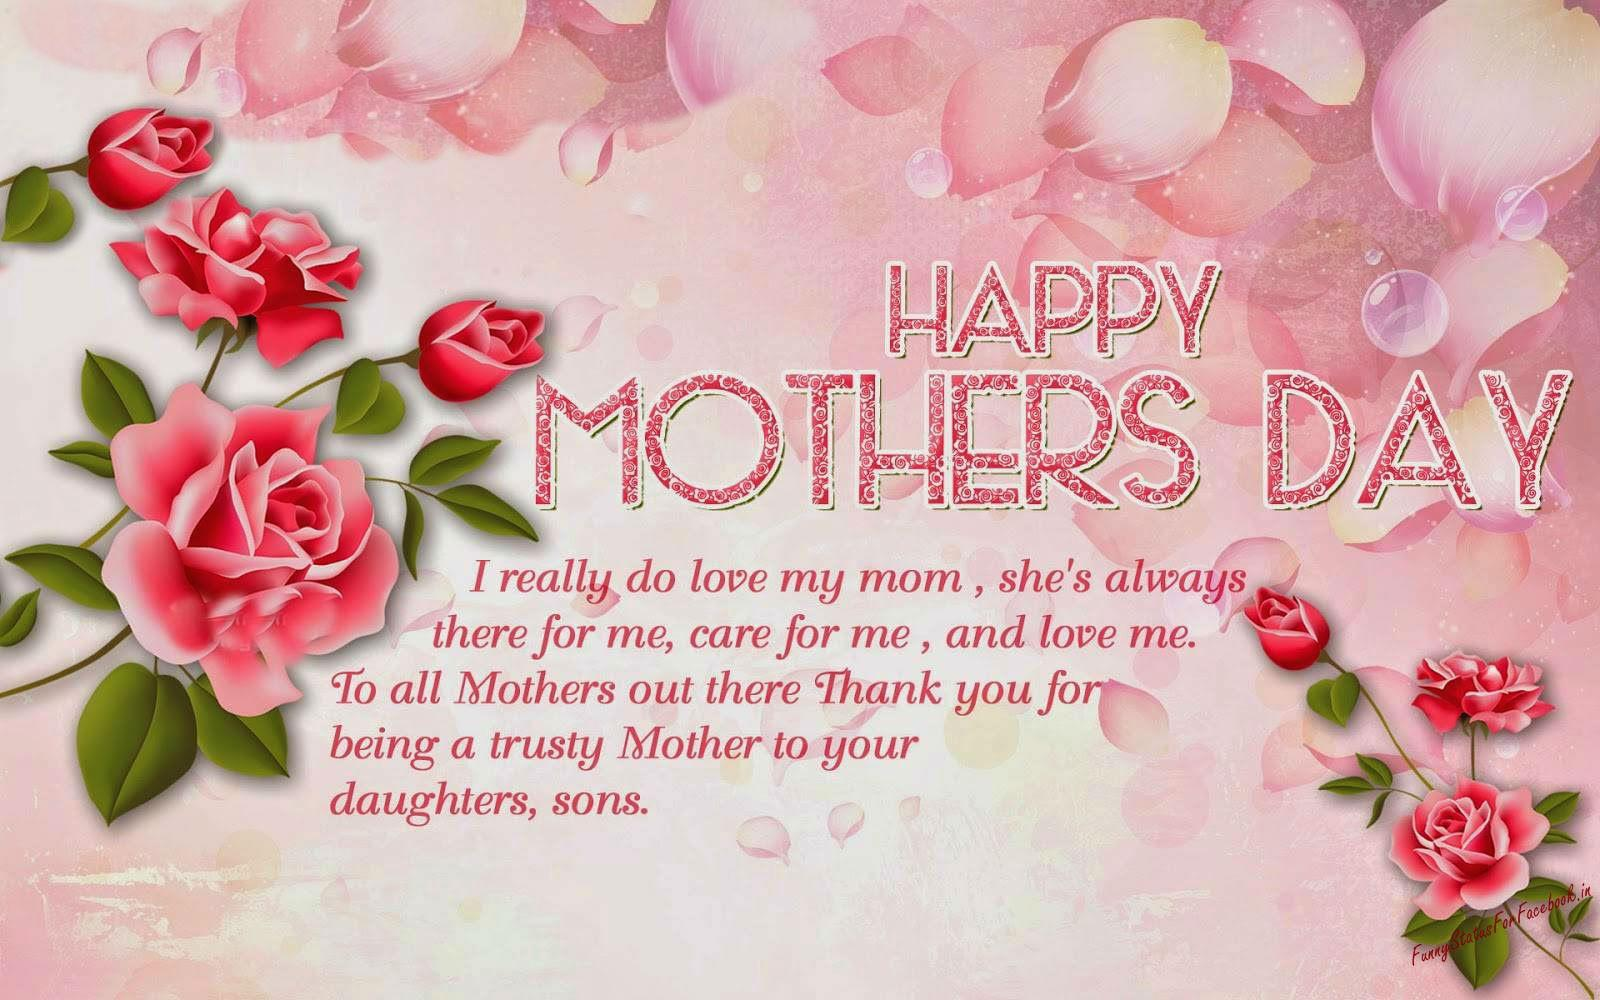 Happy Mother S Day 2019 Love Quotes Wishes And Sayings: Quotes For My Best Friend